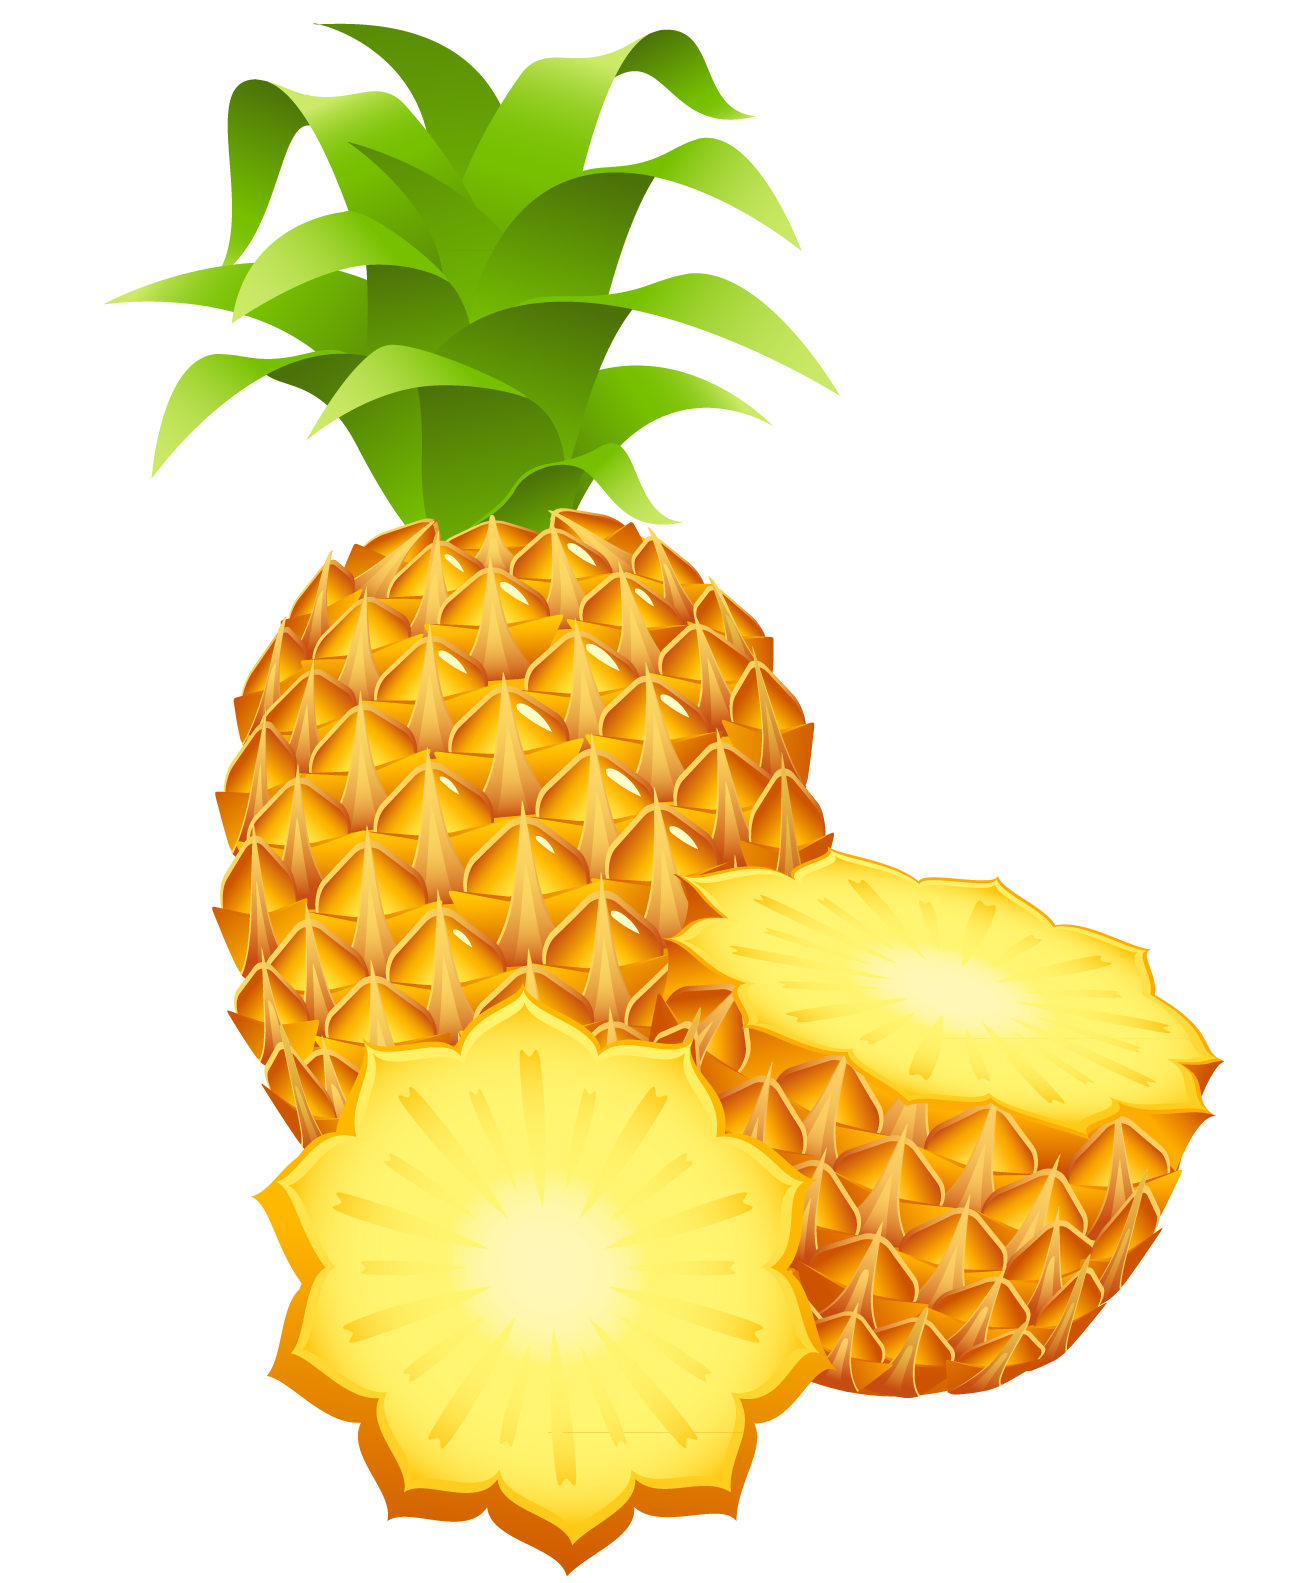 Large painted pineapple png. Potato clipart boiled potato